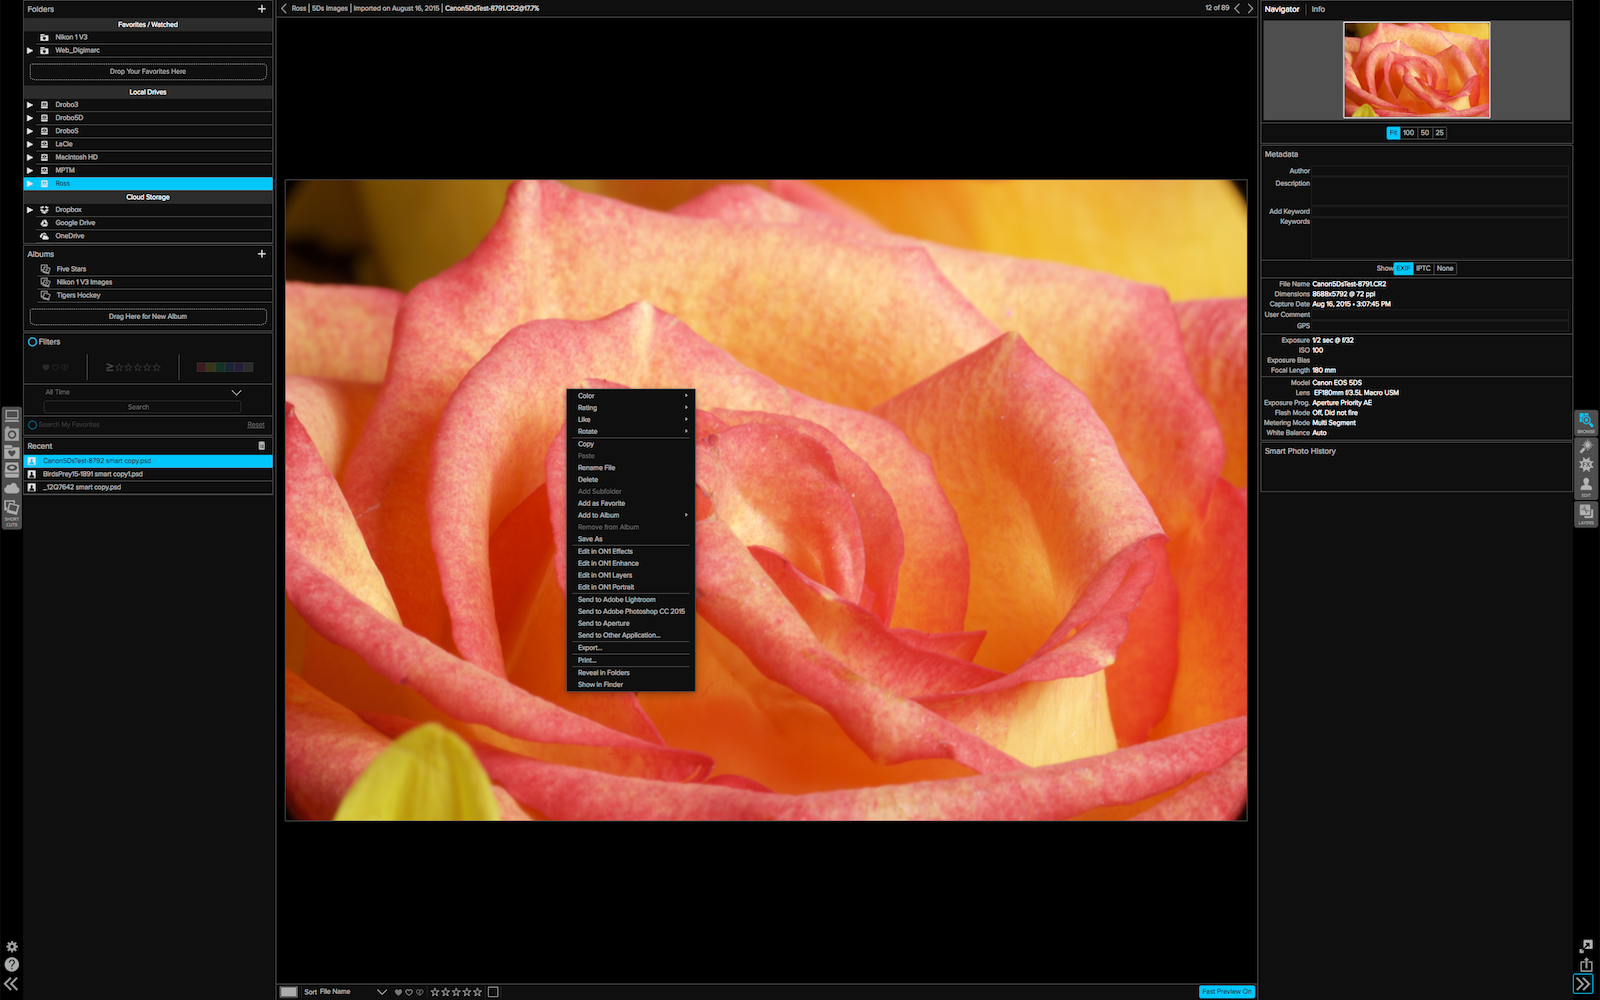 A right click exposes the contextual menu that sends and exports images